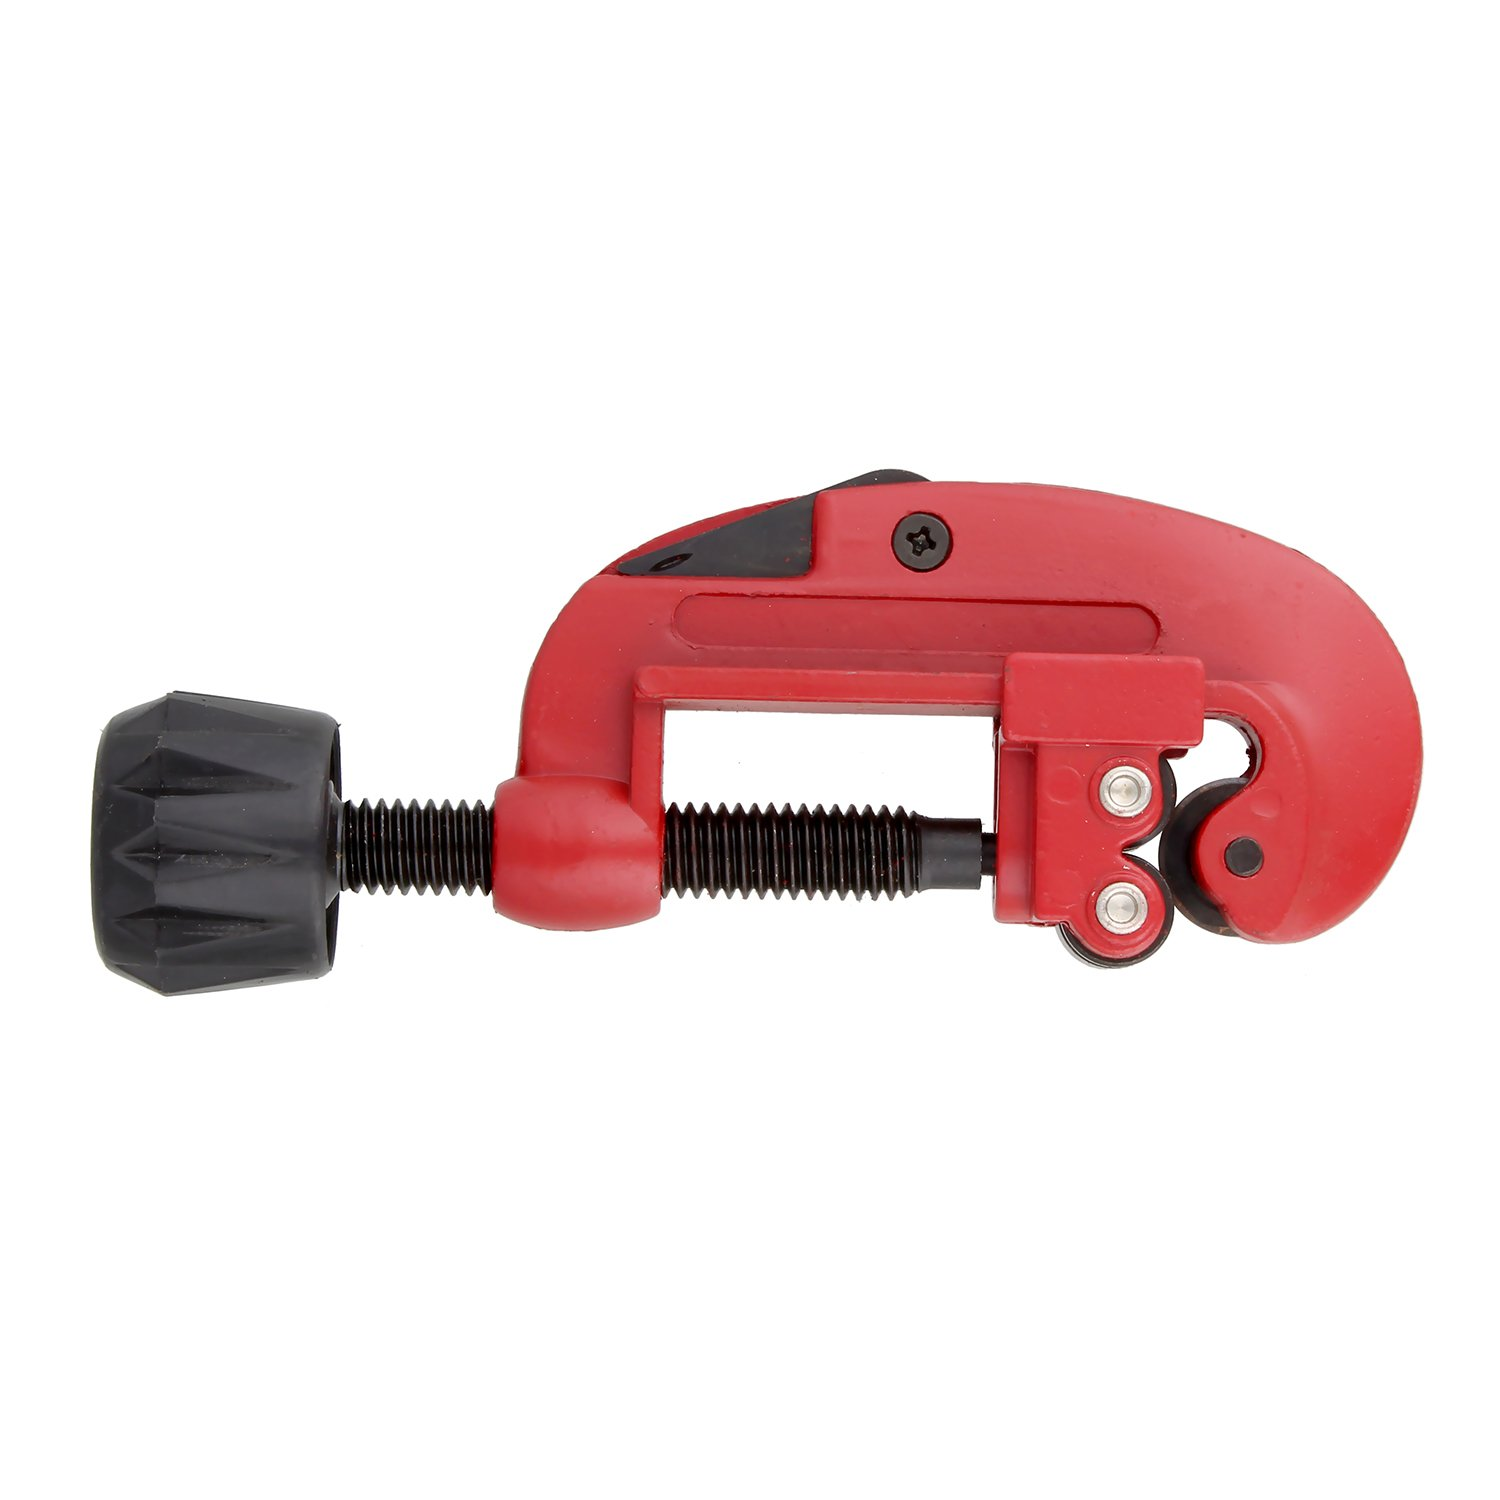 Master Plumber 745122 5//8 To 2-1//8-Inch Large Pipe Tube Cutter